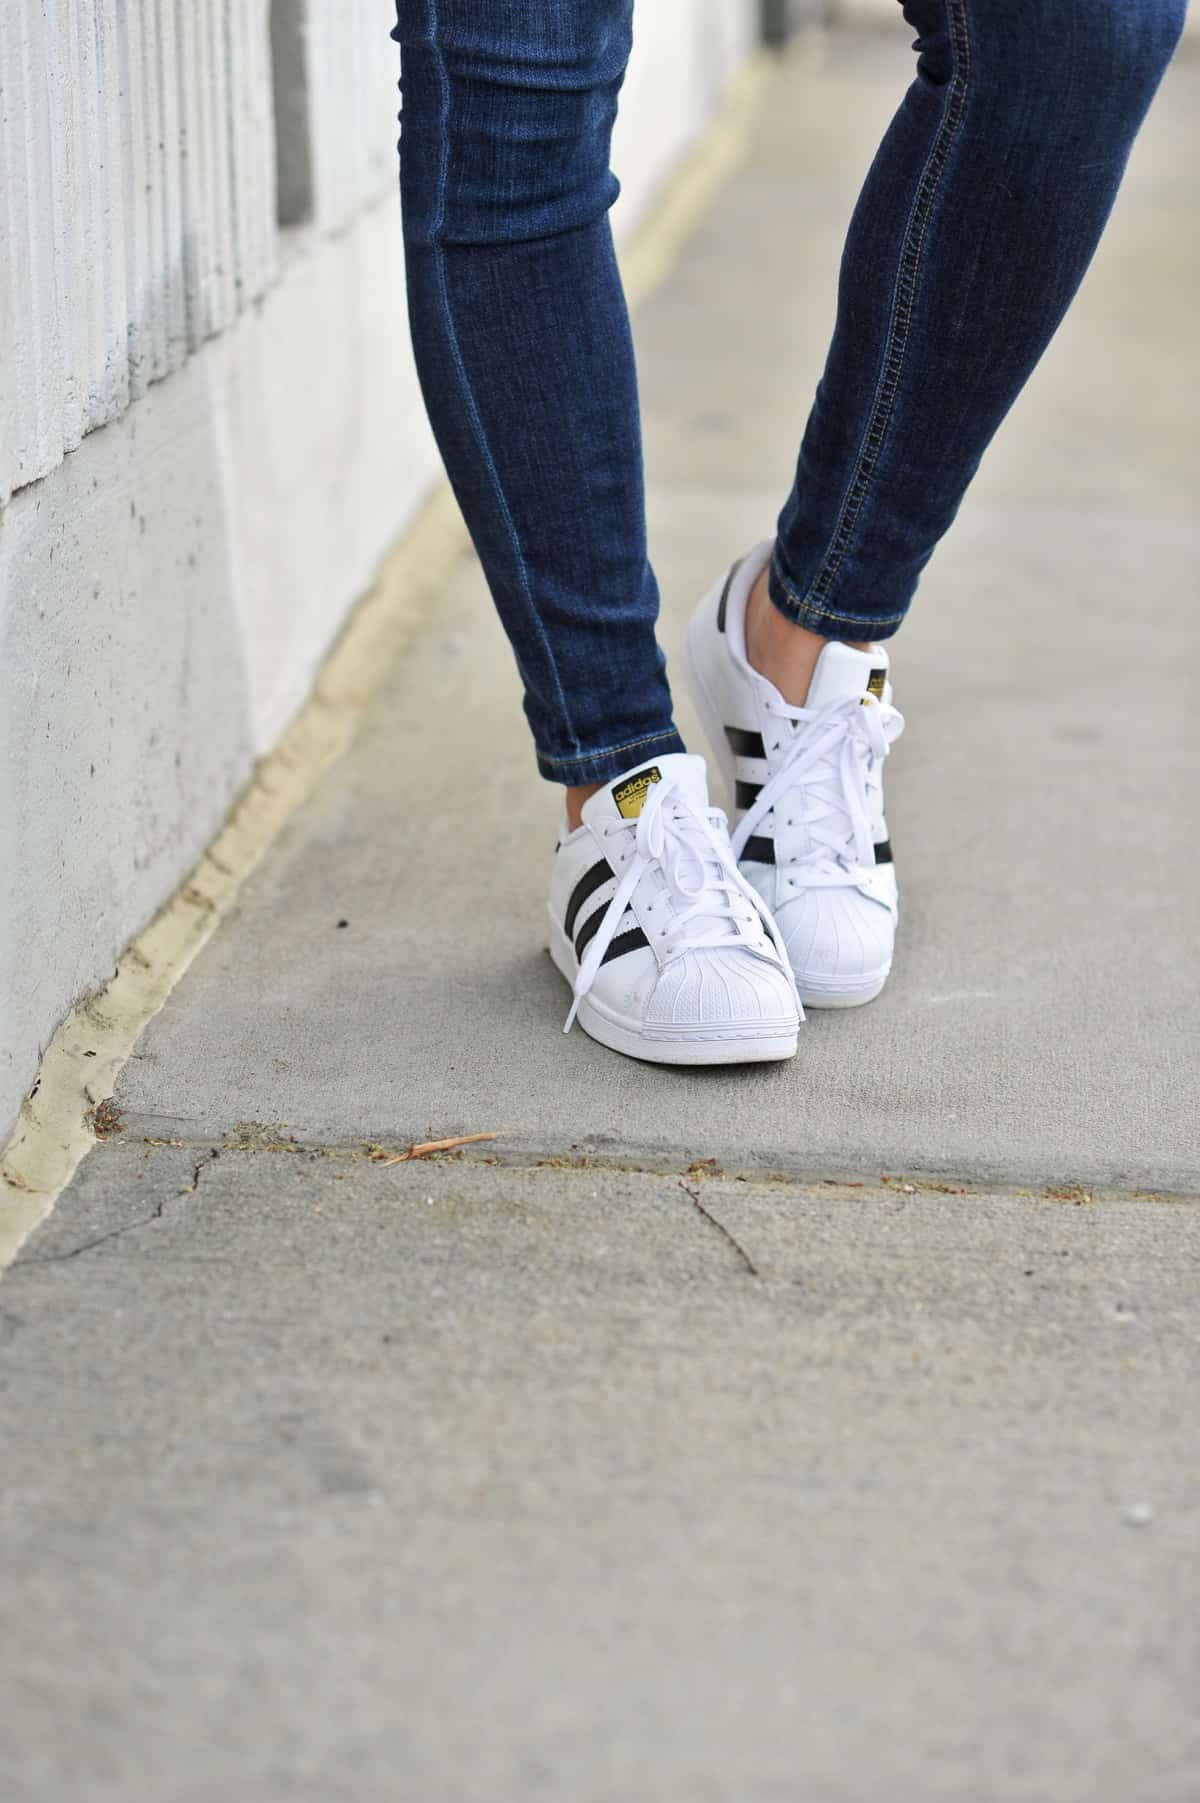 adidas and jeans